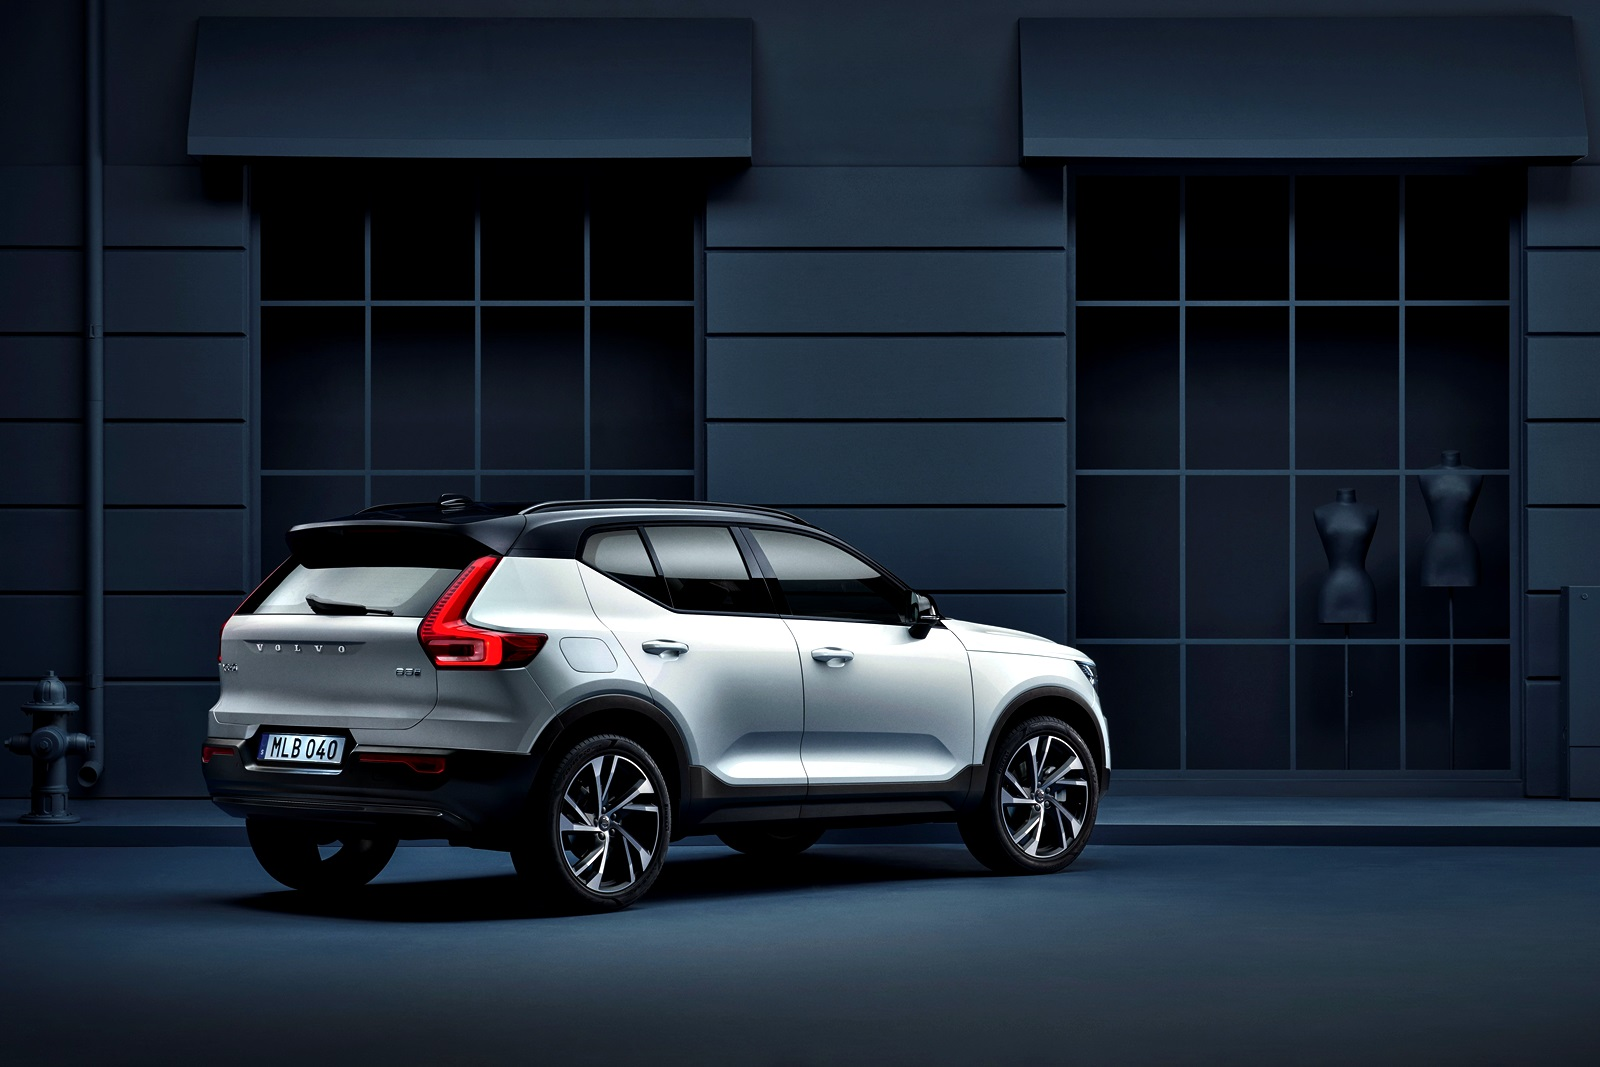 Xc40 R Design Expression, In Crystal White Pearl